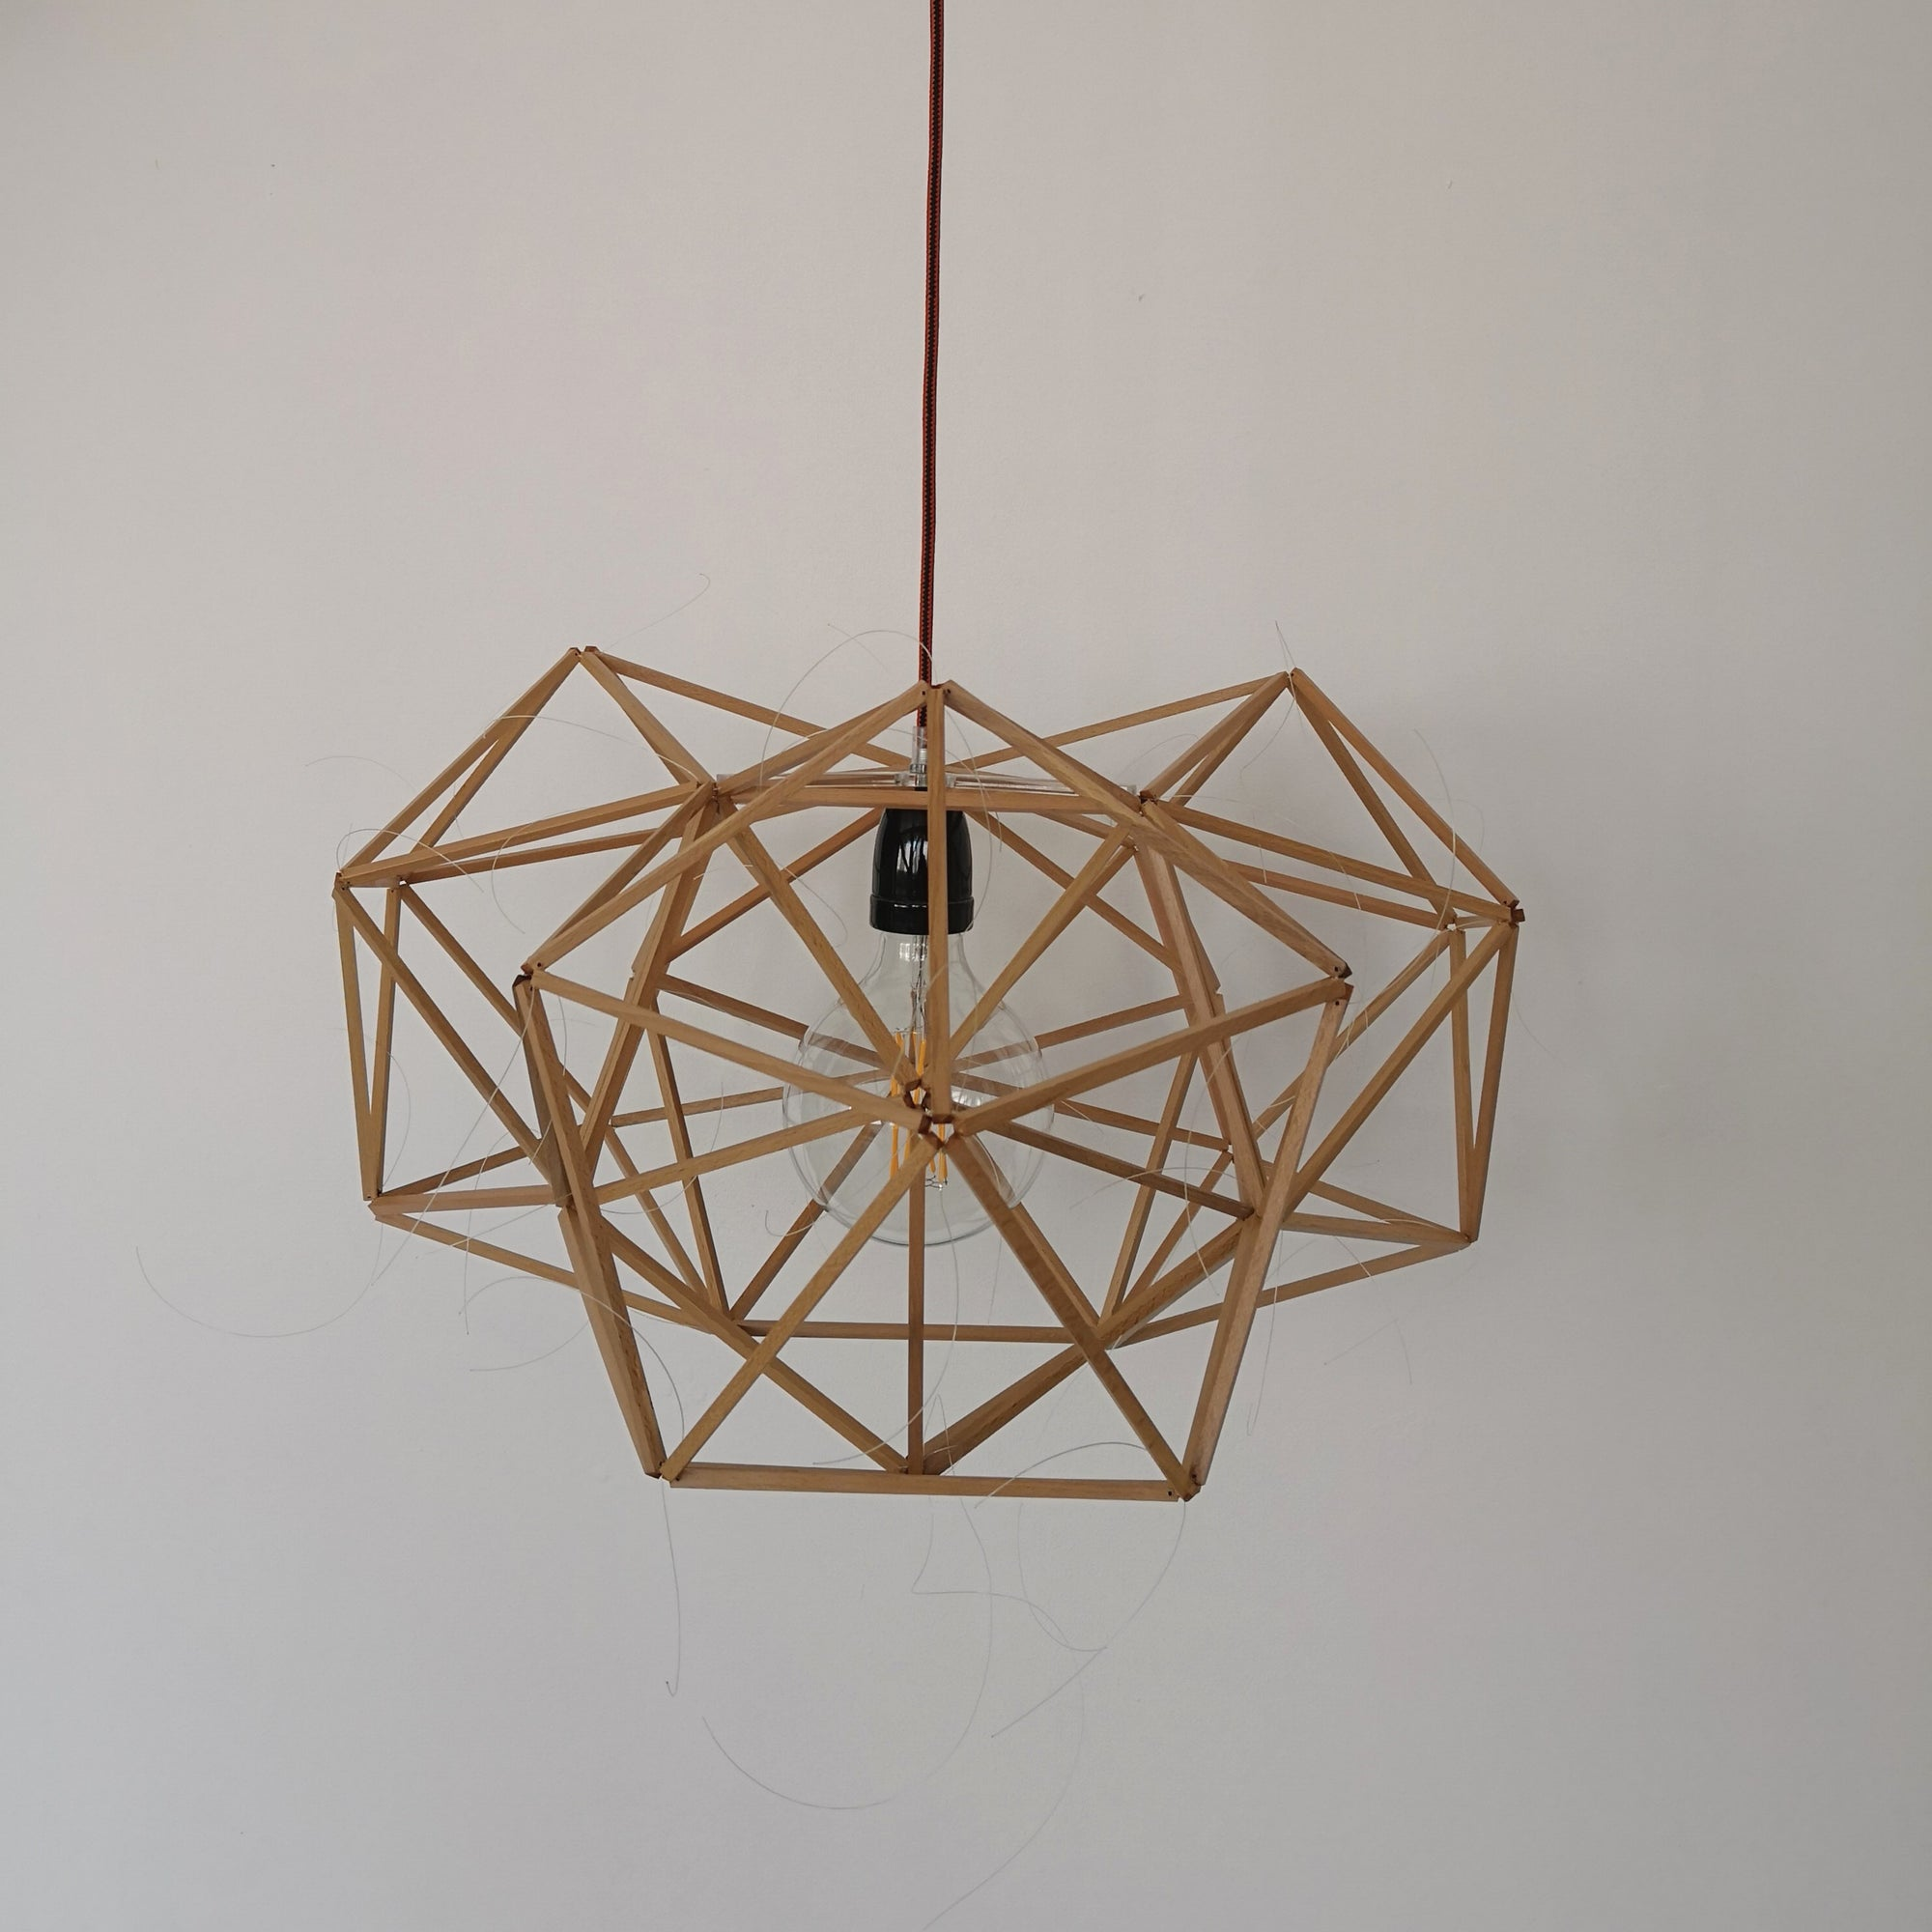 Rubble Inerior Design Marketplace, ICO #3 Ceiling Lamp by Flighting Designer